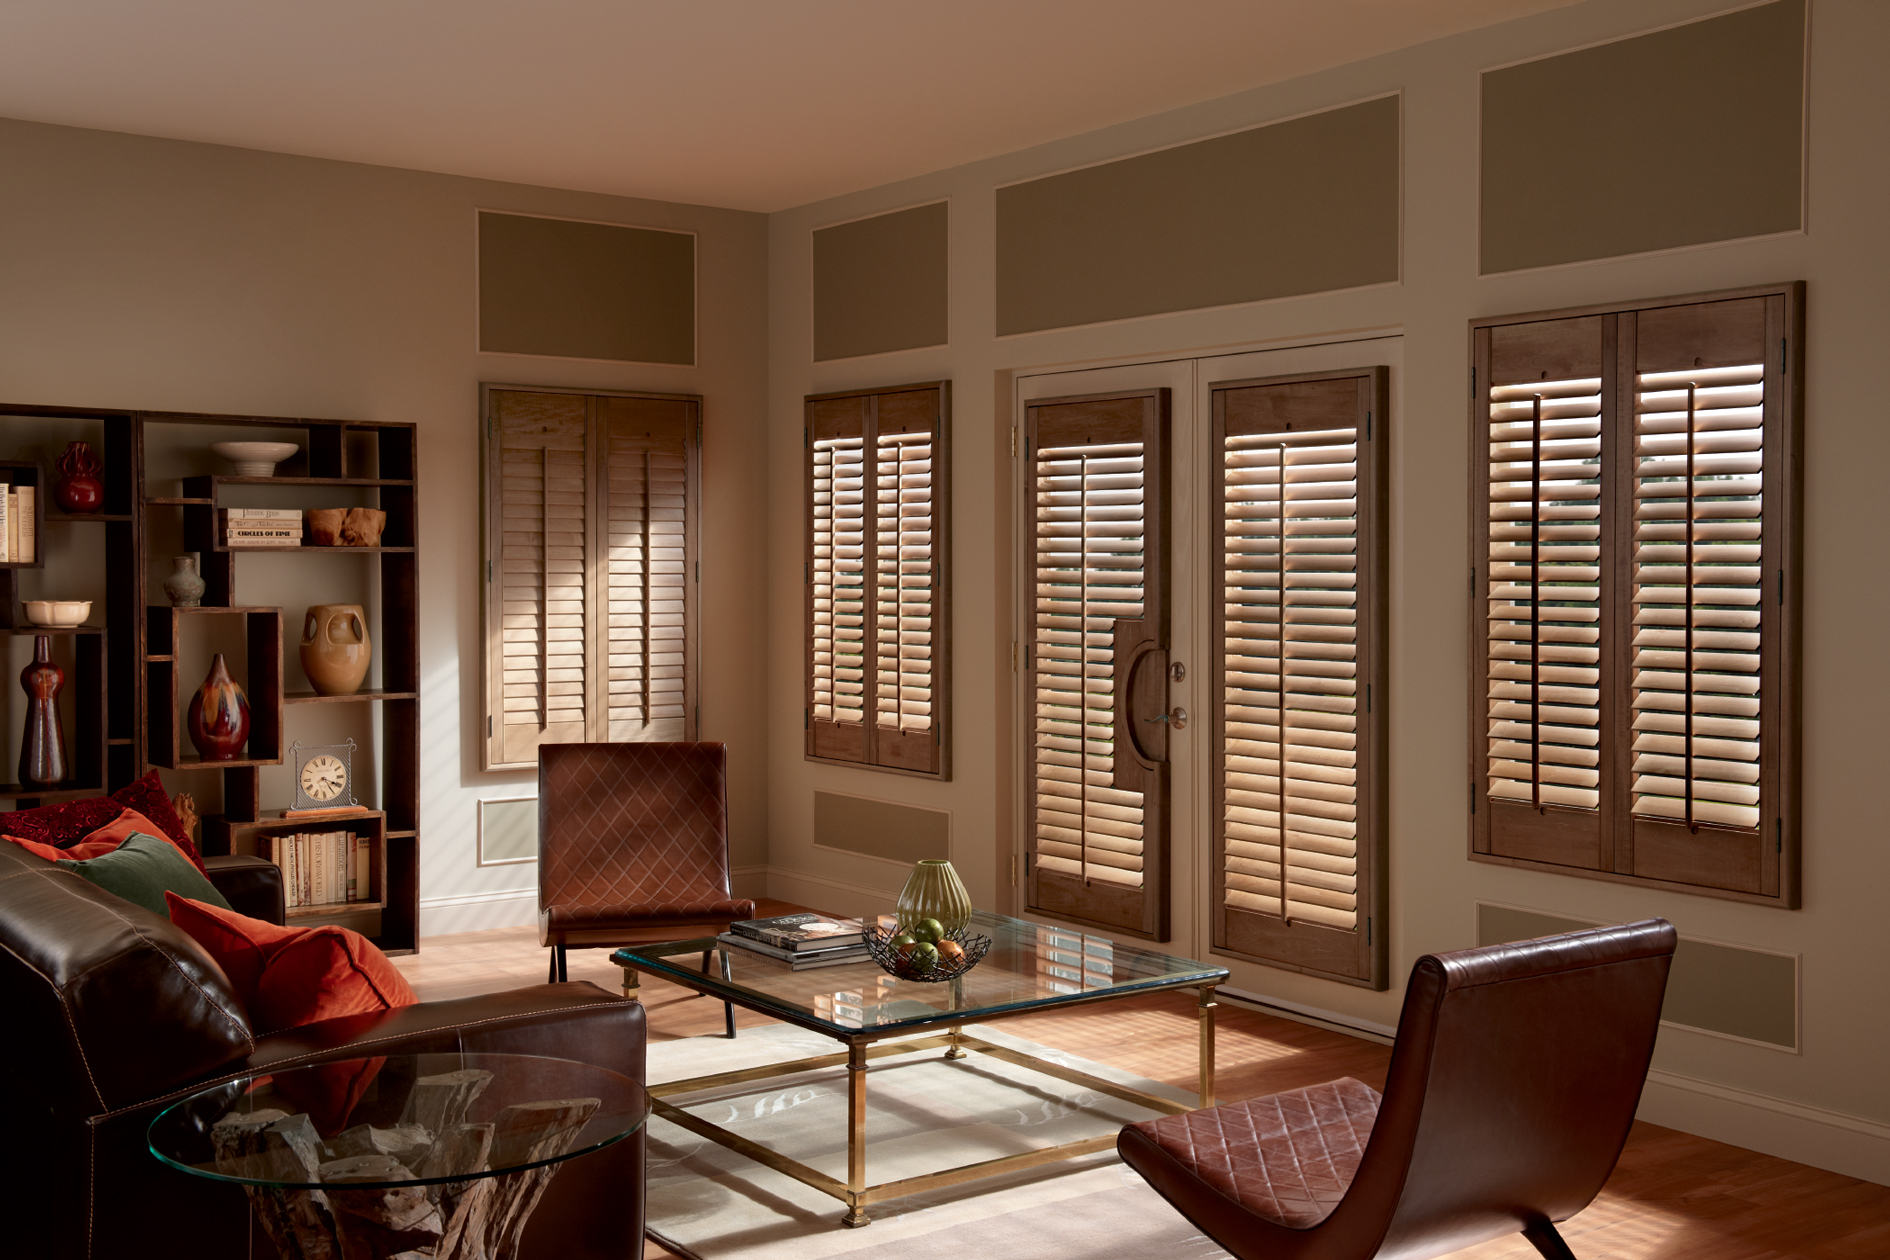 plantation-shutters-from-graber-window-treatments-id-gws0808_rn041210ca